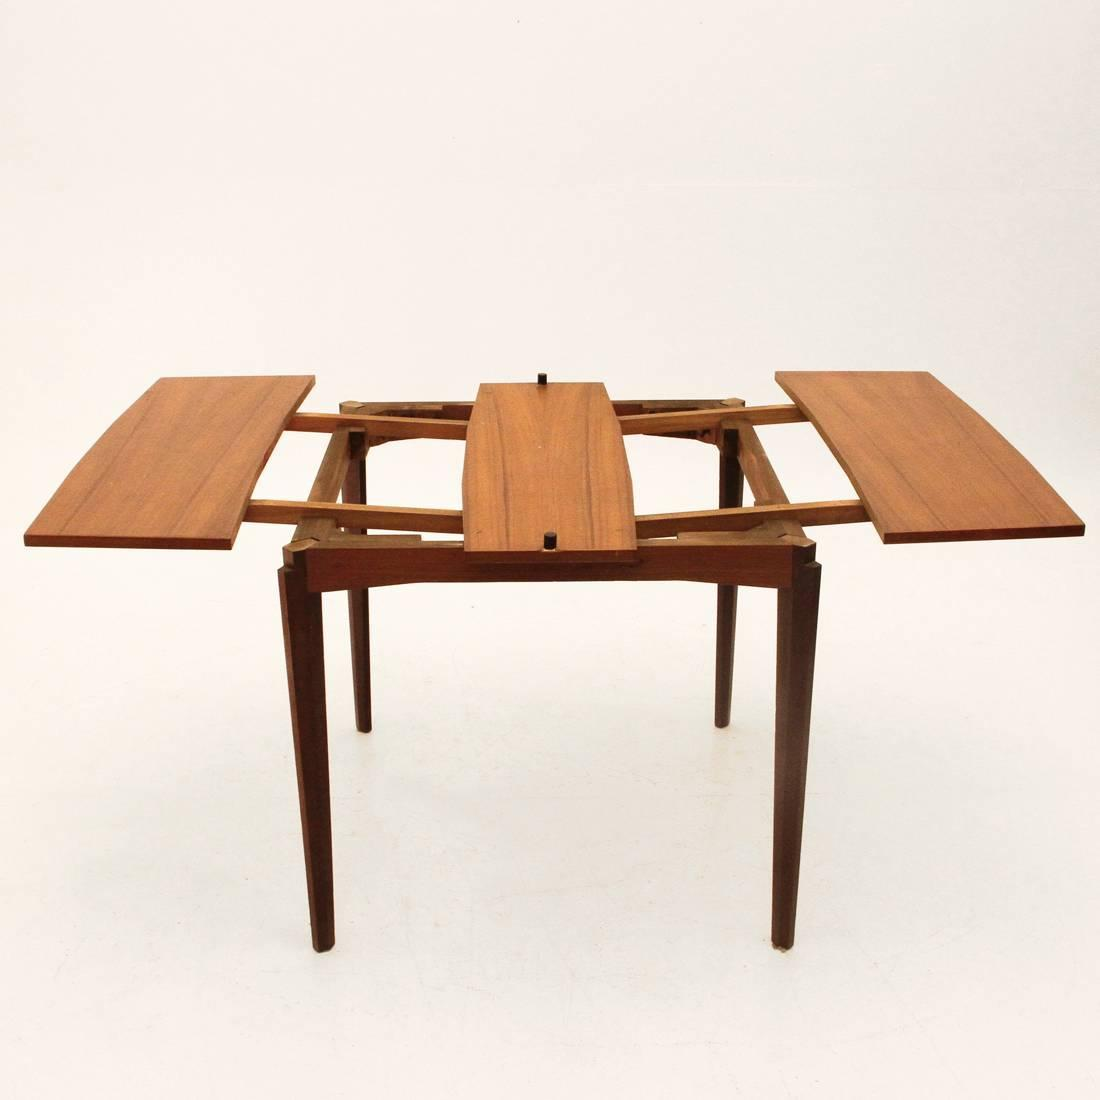 italian folding dining table 1950s for sale at 1stdibs. Black Bedroom Furniture Sets. Home Design Ideas